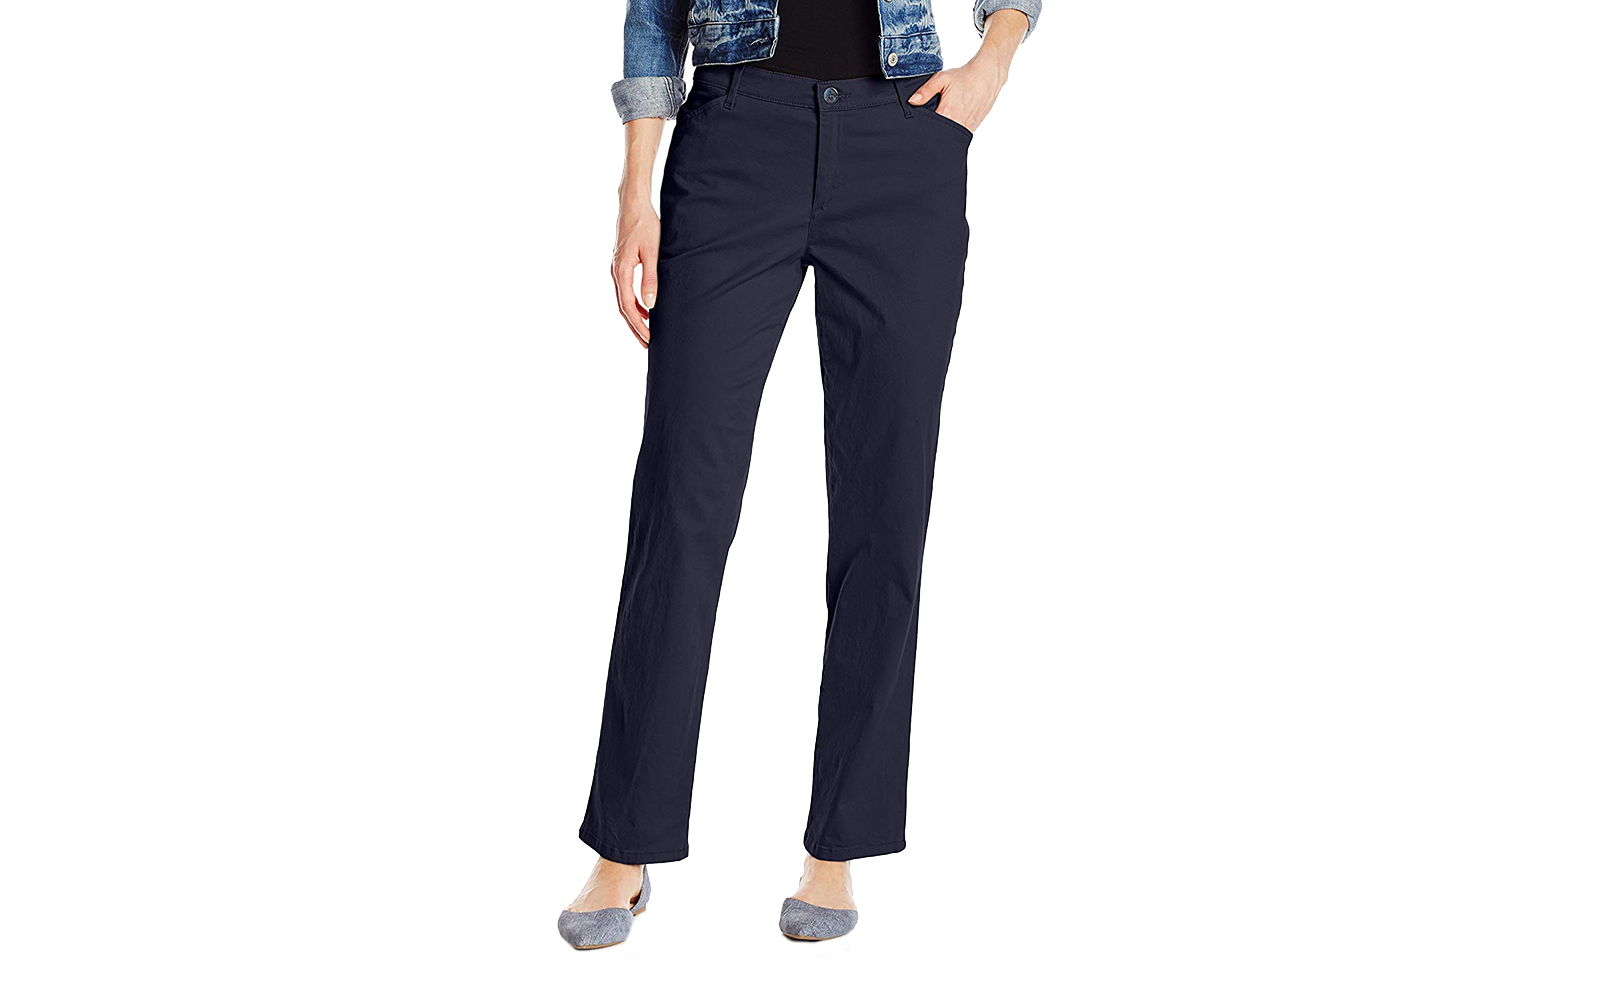 LEE Women's Relaxed Fit All Day Straight Leg Pant Imperial Blue